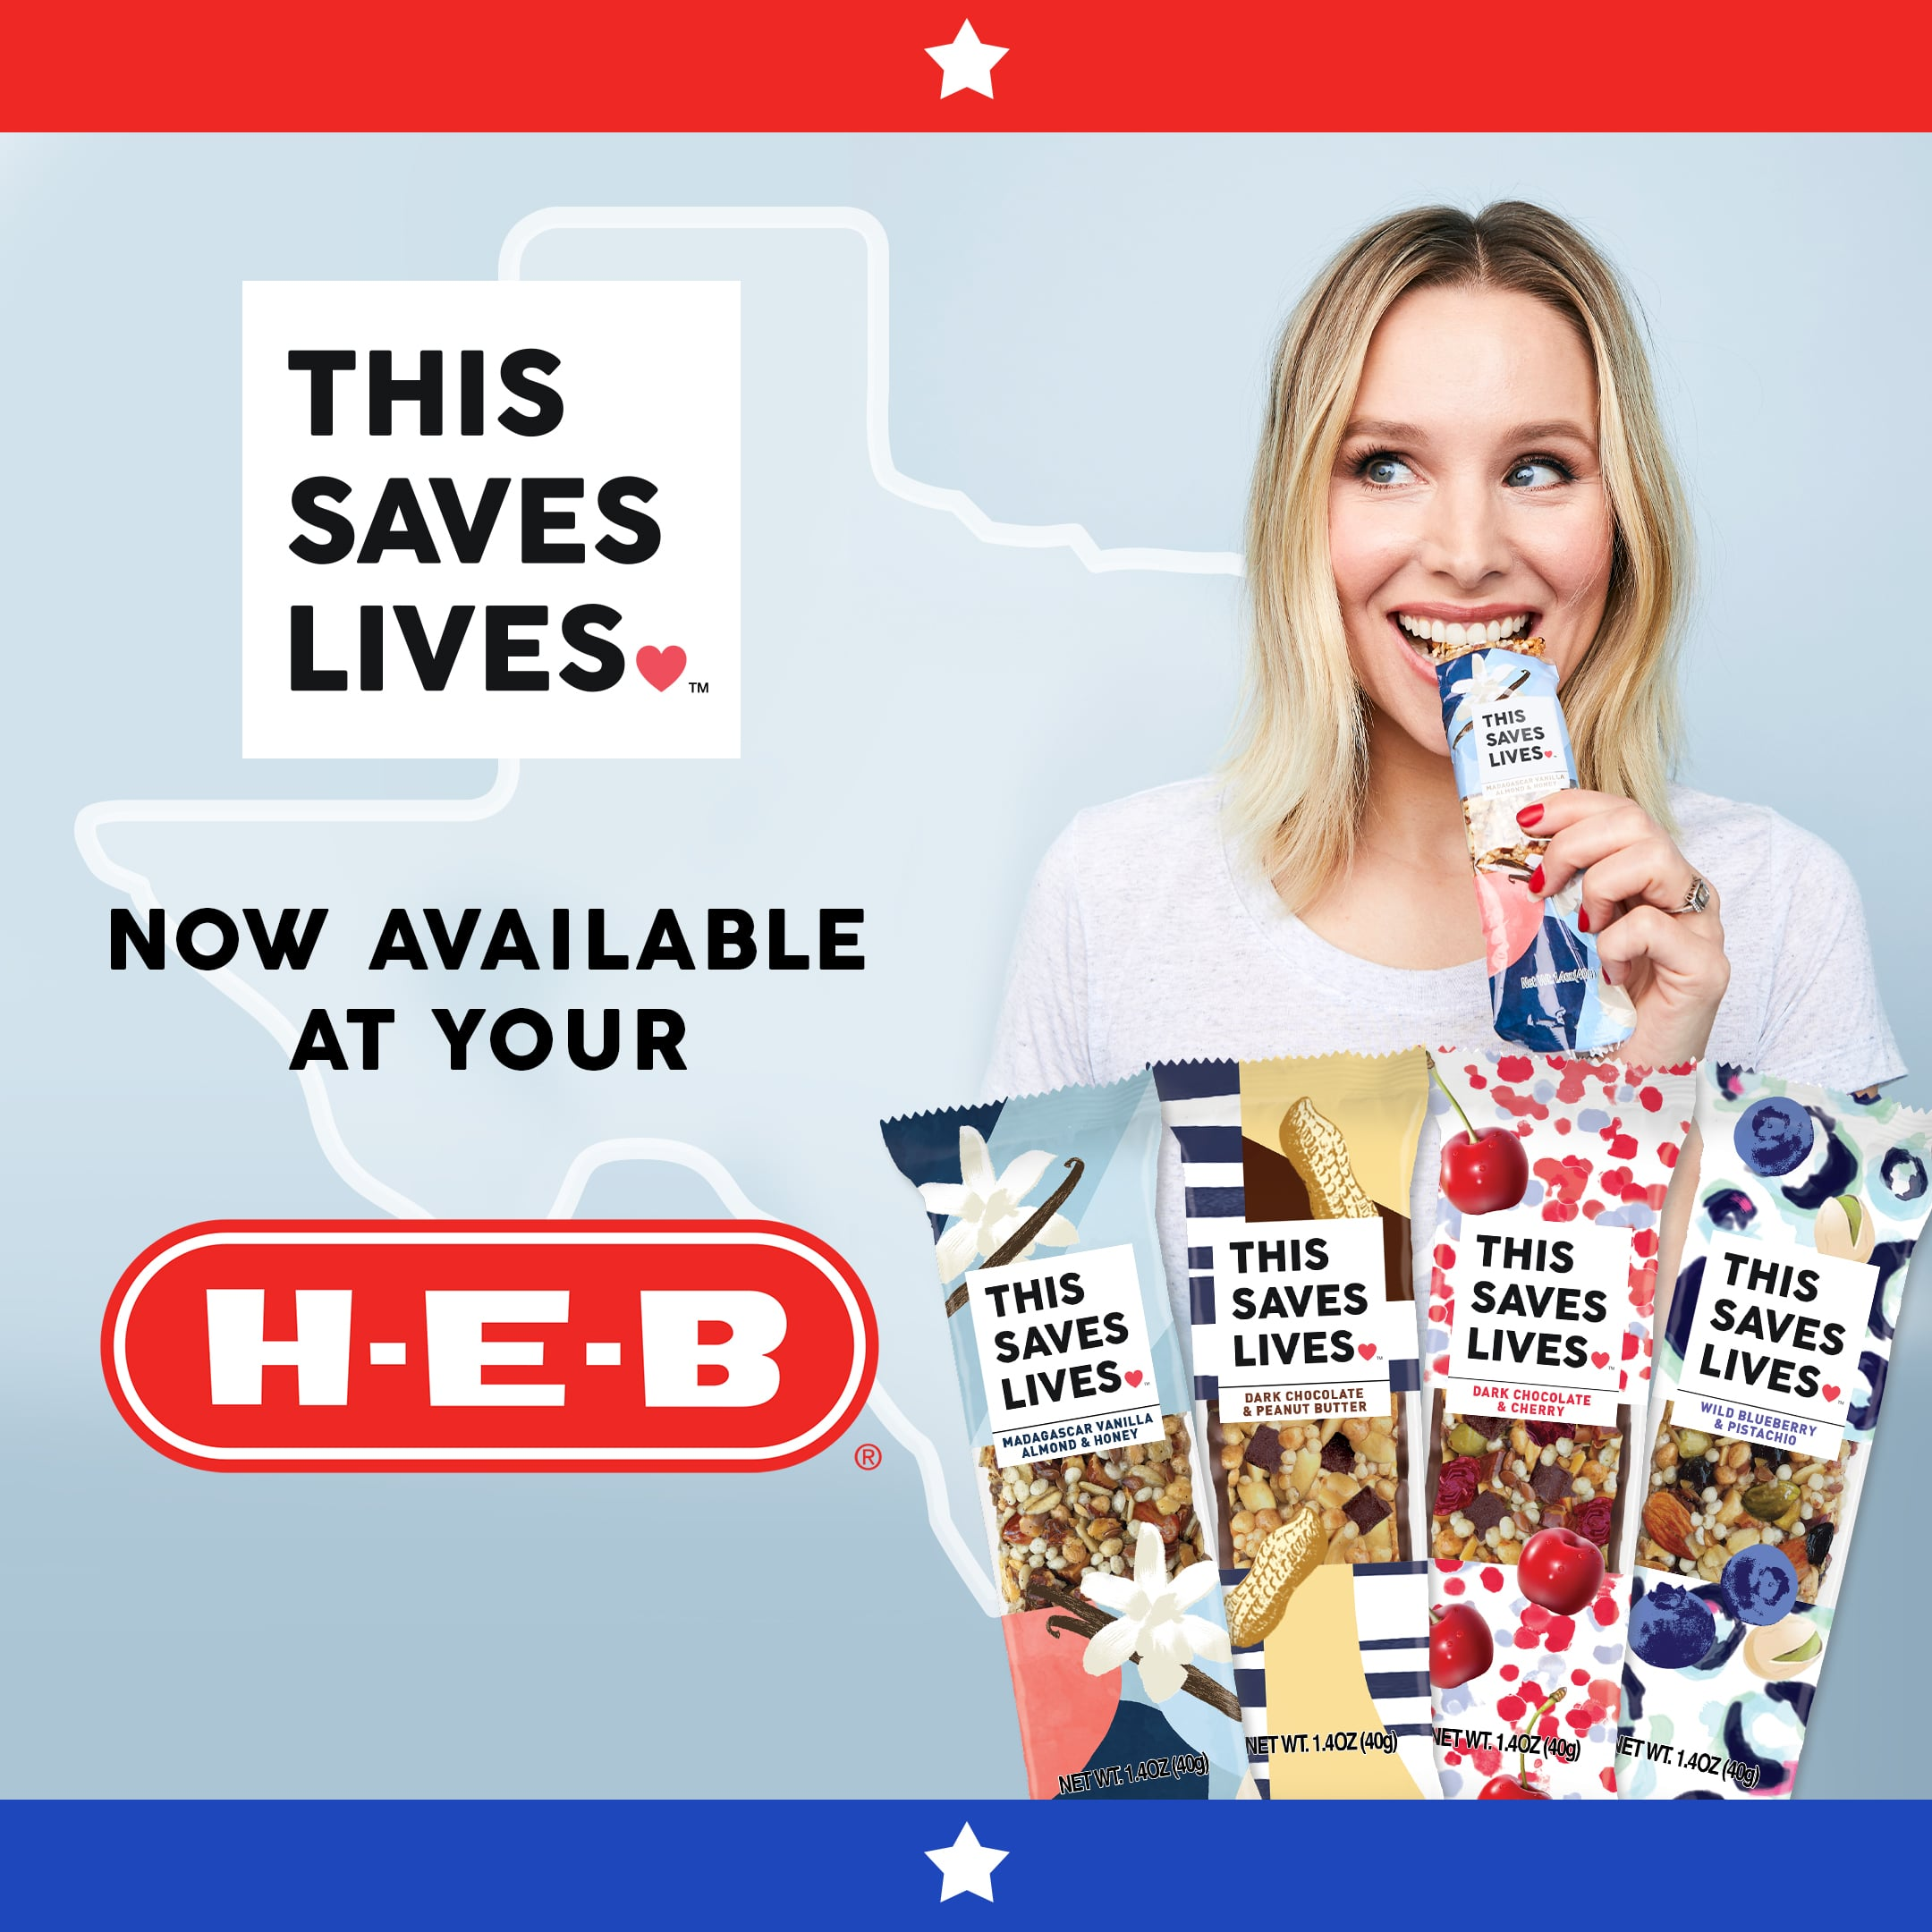 This Saves Lives Launches in Texas H-E-B Stores